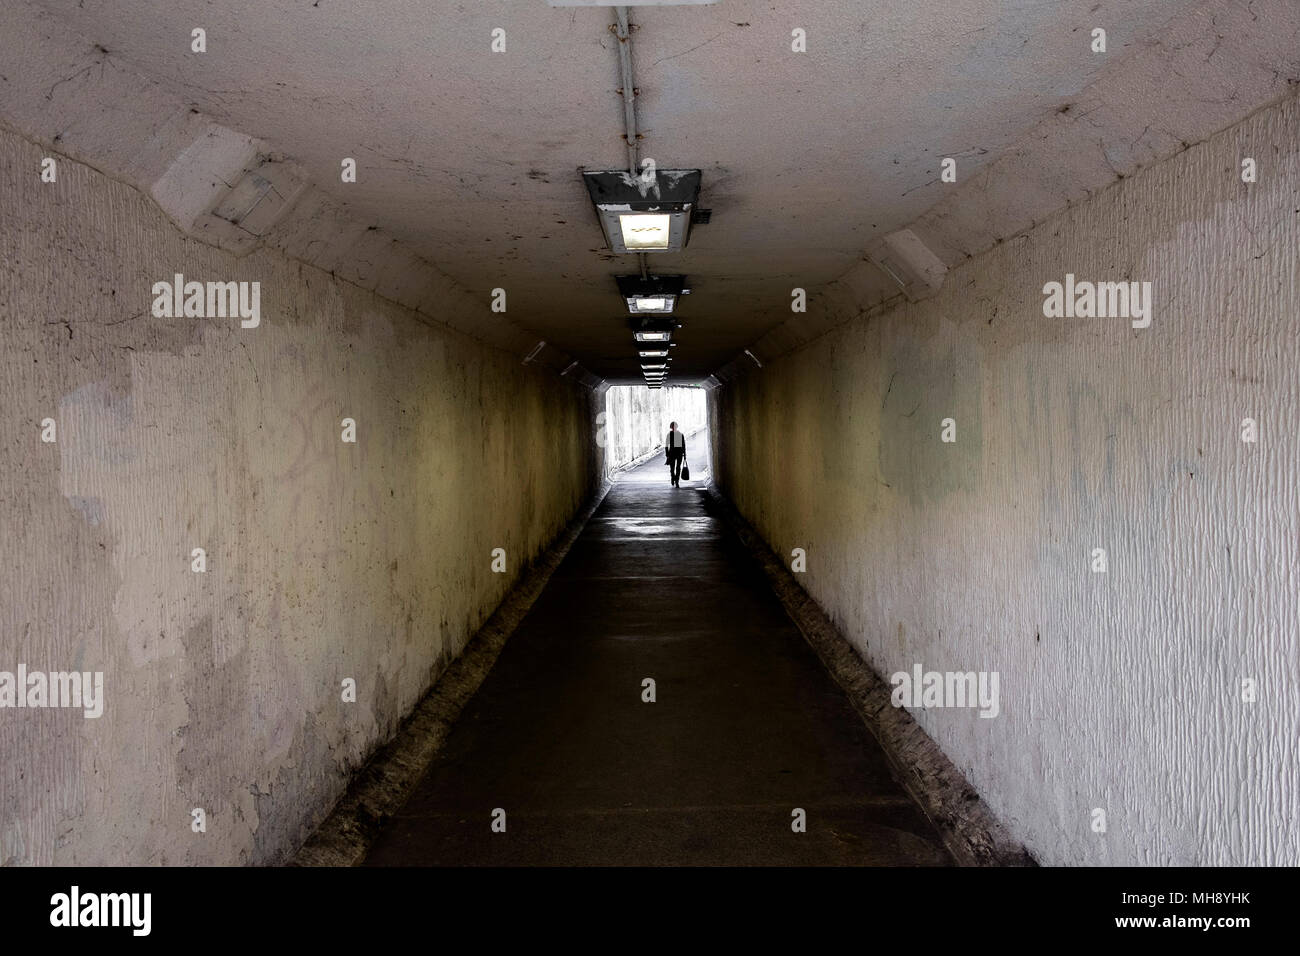 A figure walking through a dark and gloomy underpass in truro City centre in Cornwall. - Stock Image